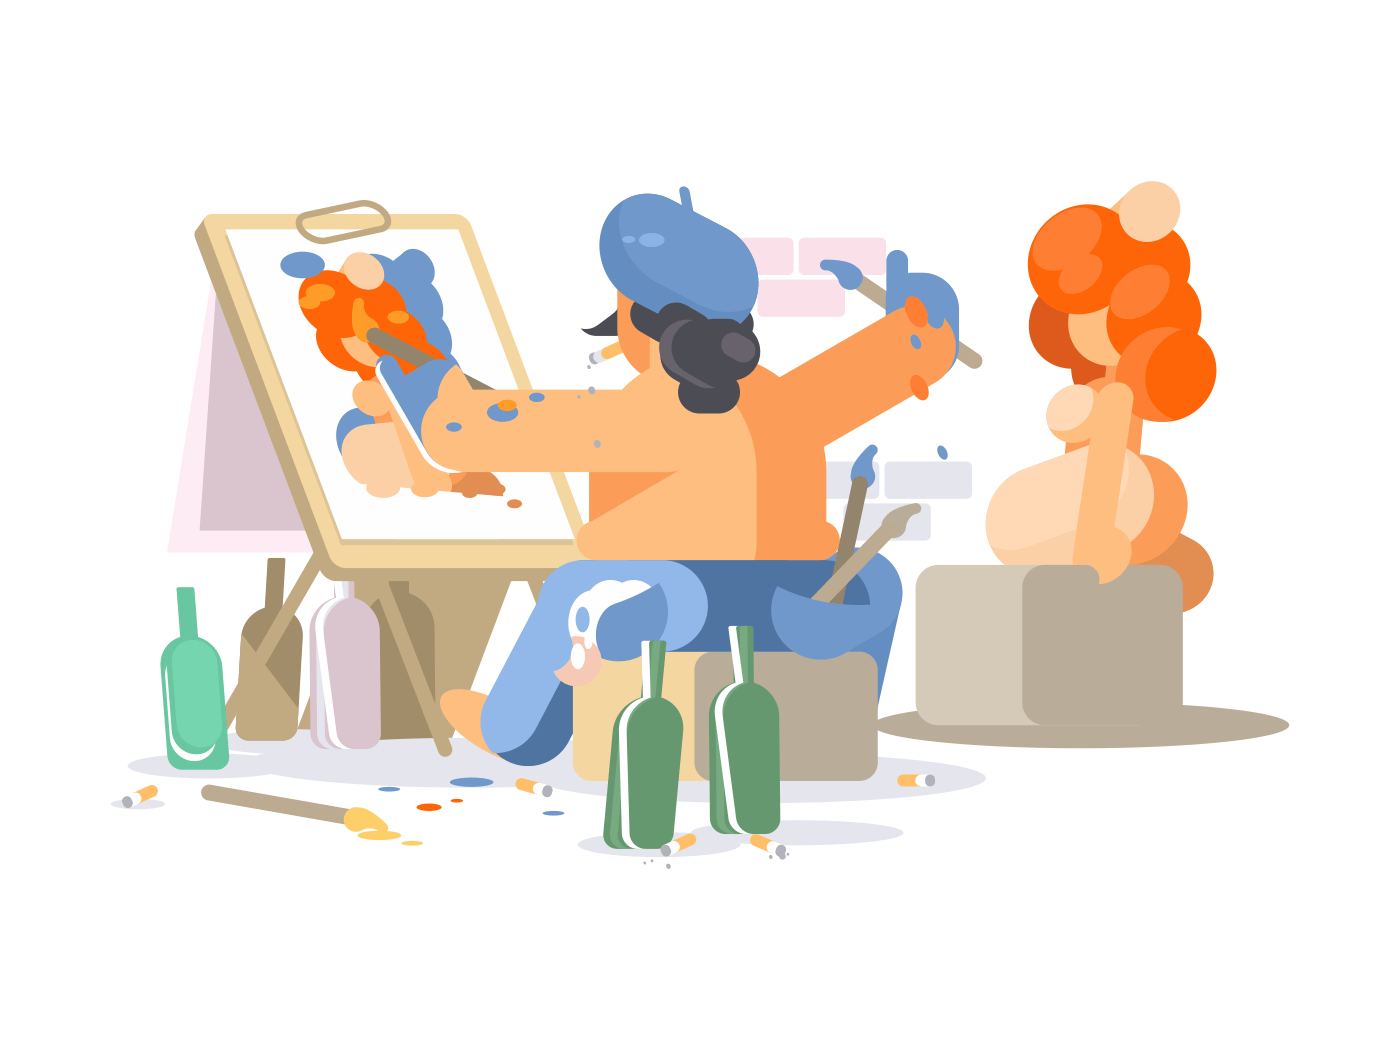 Painter draws naked girl illustration